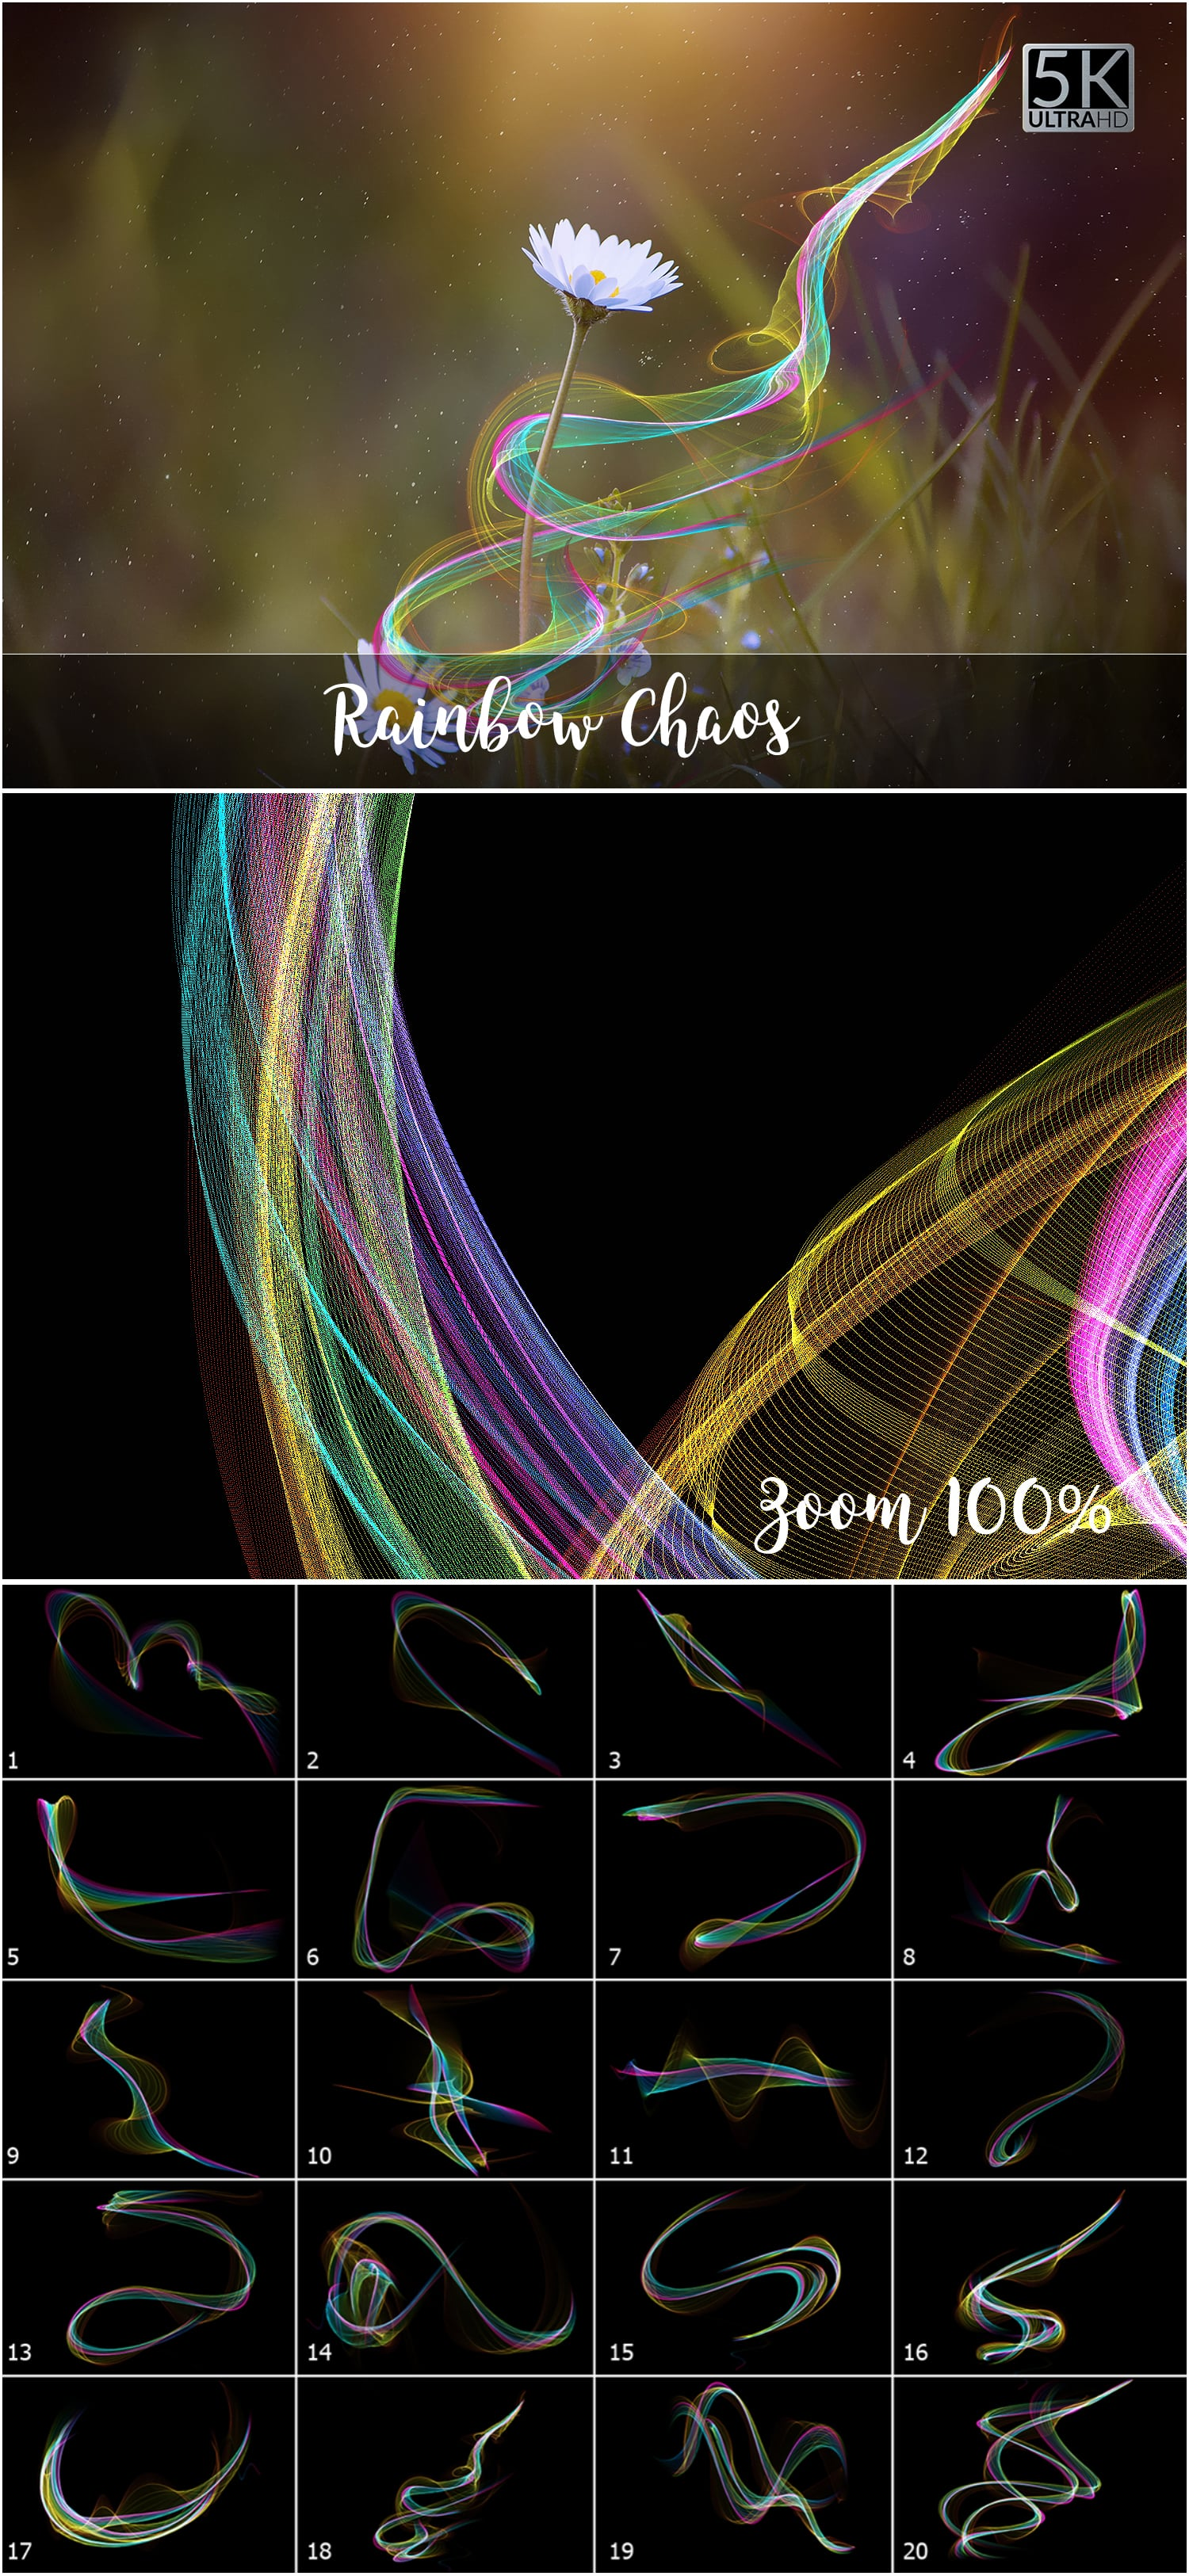 1053 Spectacular Overlays png - Only $18! - Rainbow Chaos